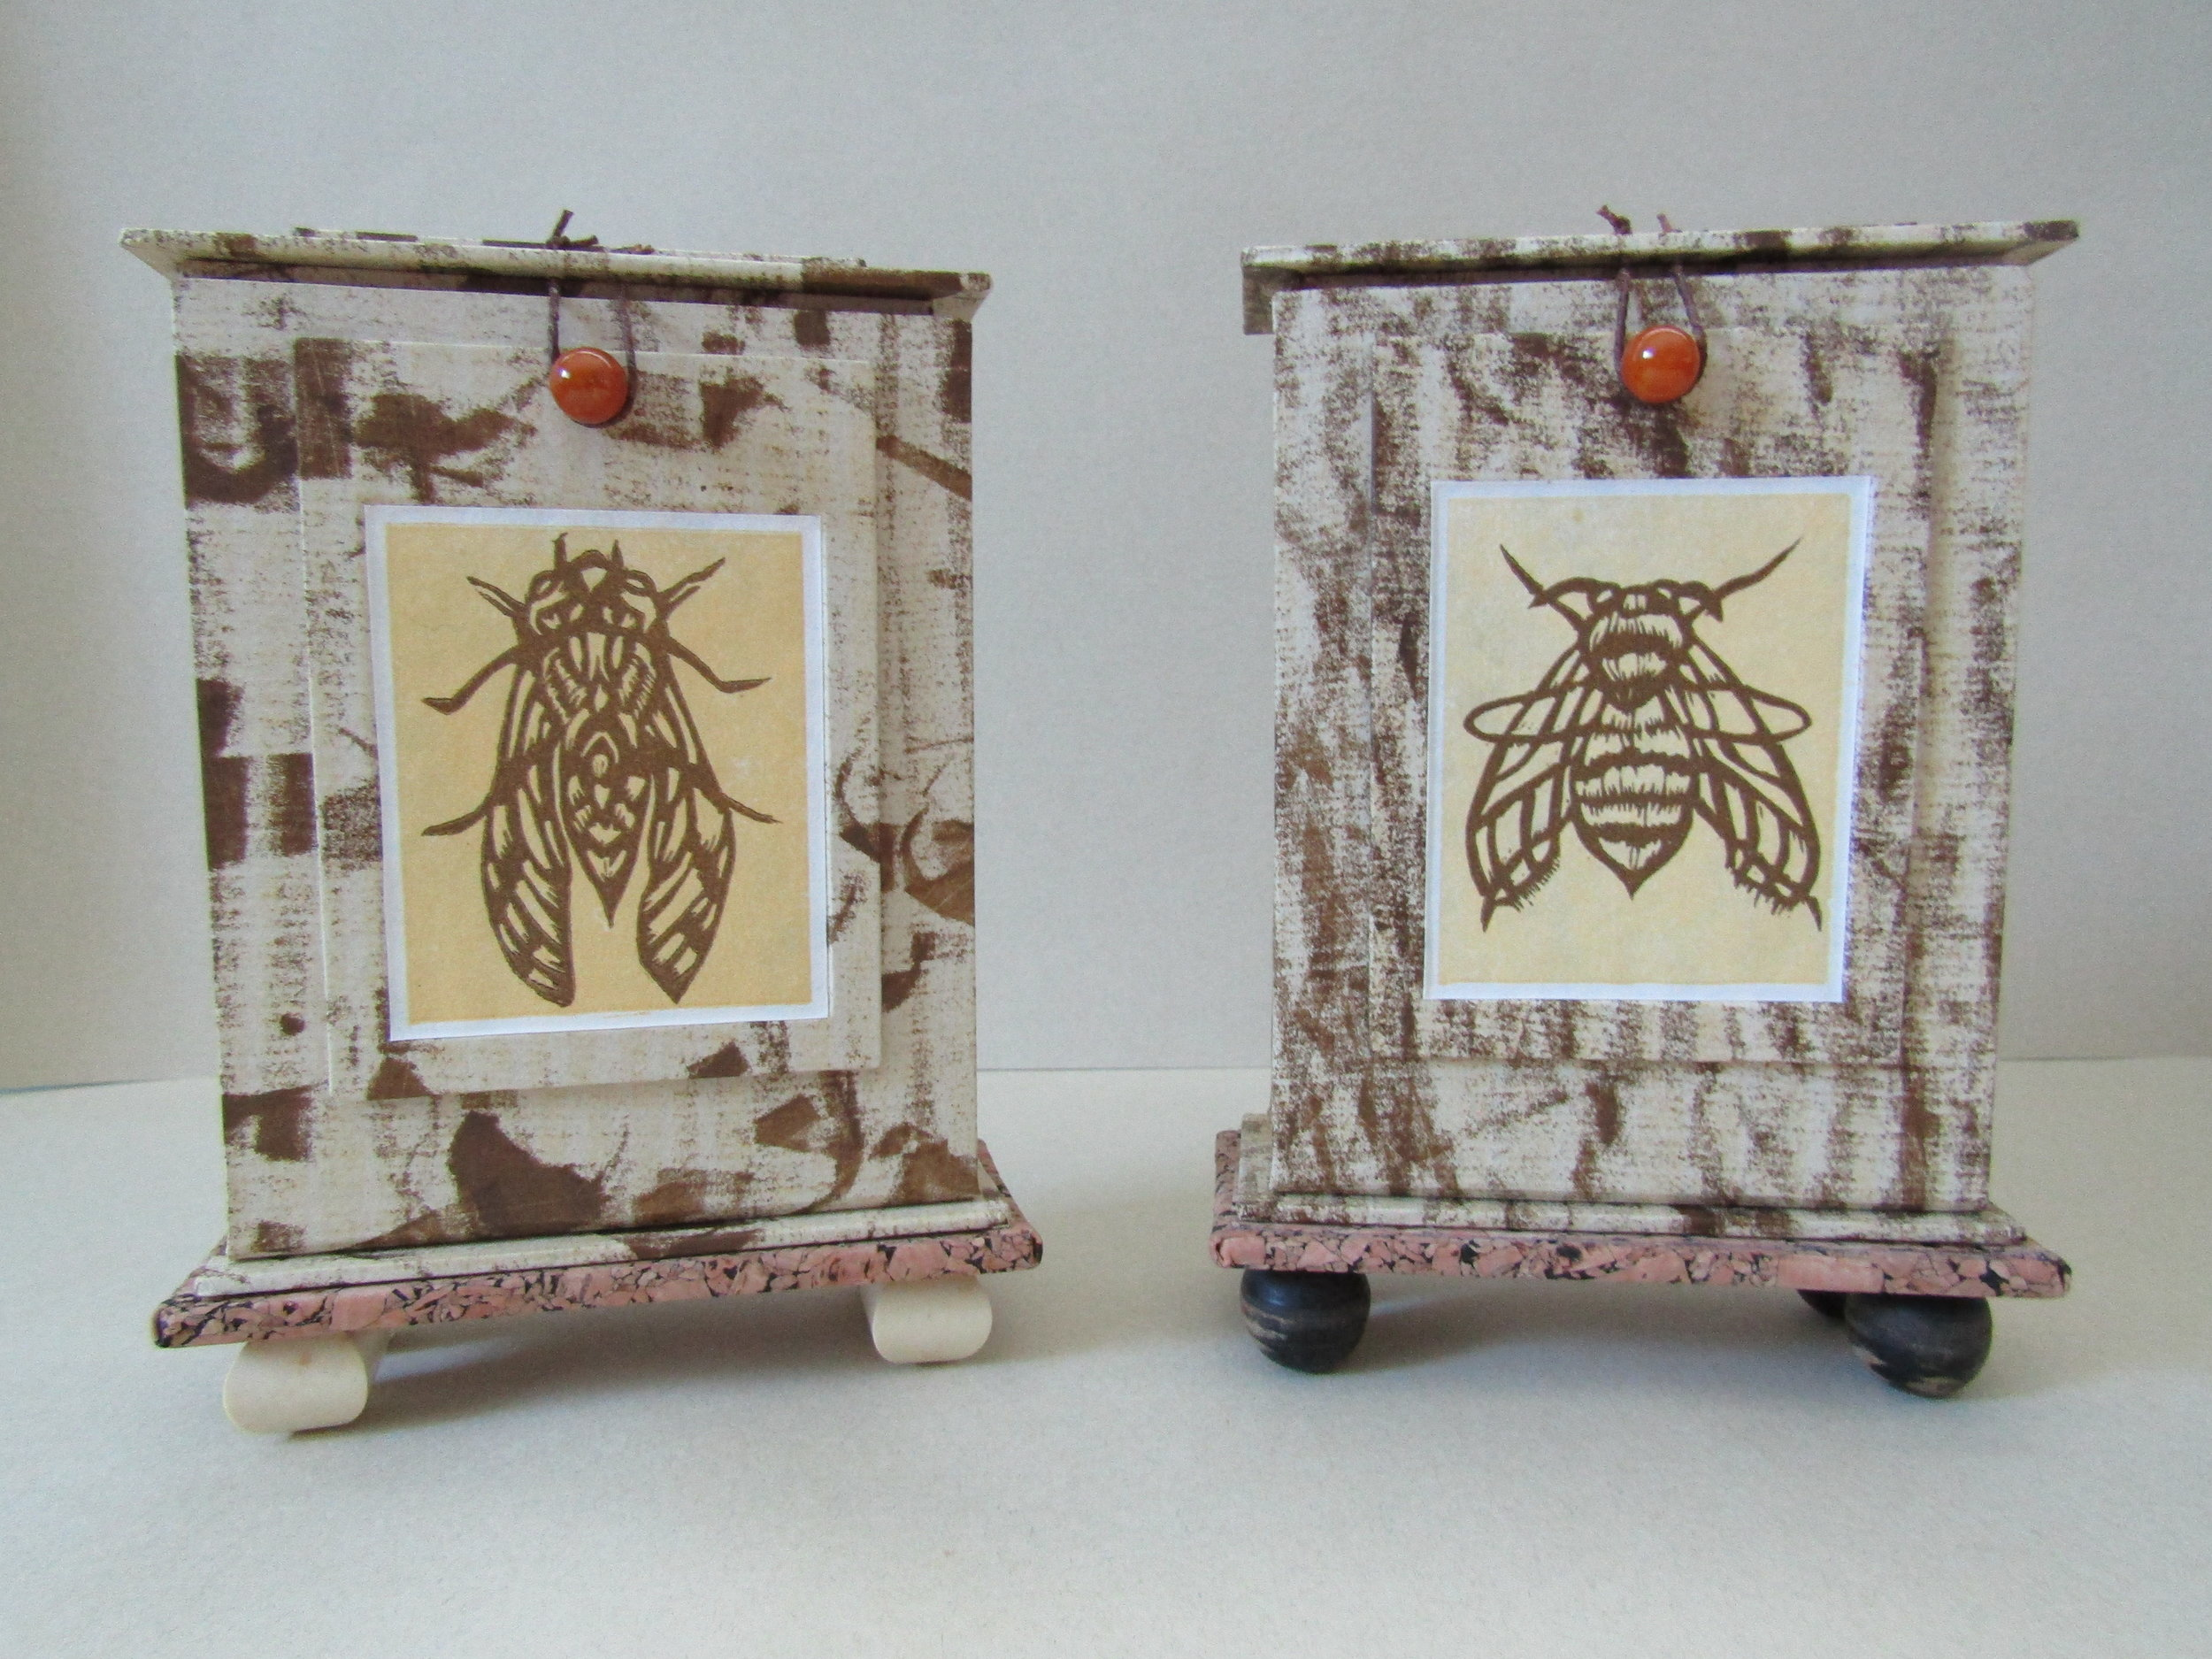 Completed Cicada and Bee reliquaries.